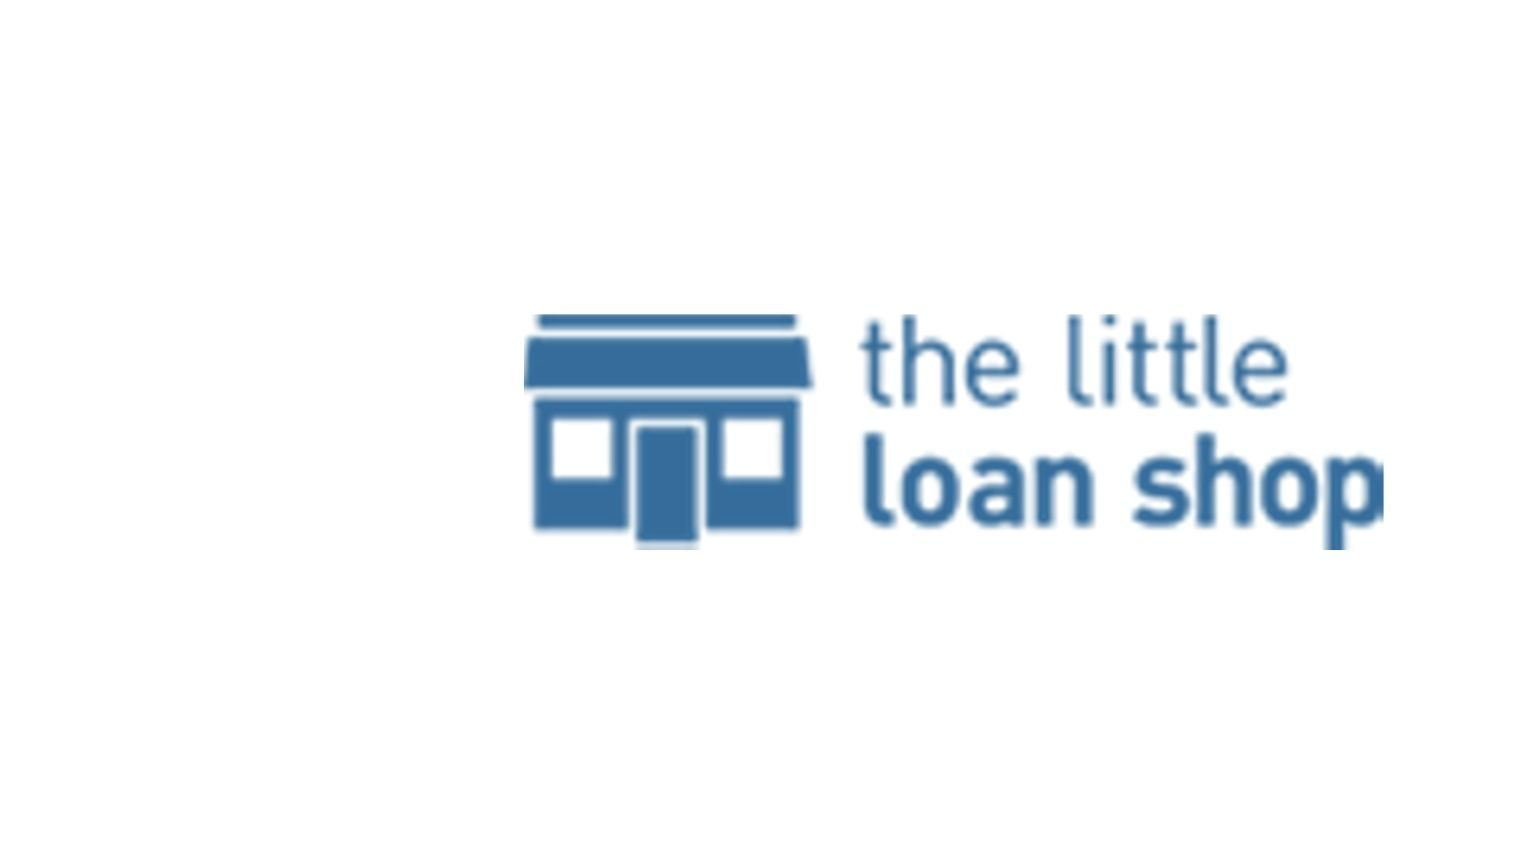 the little loan shop logo